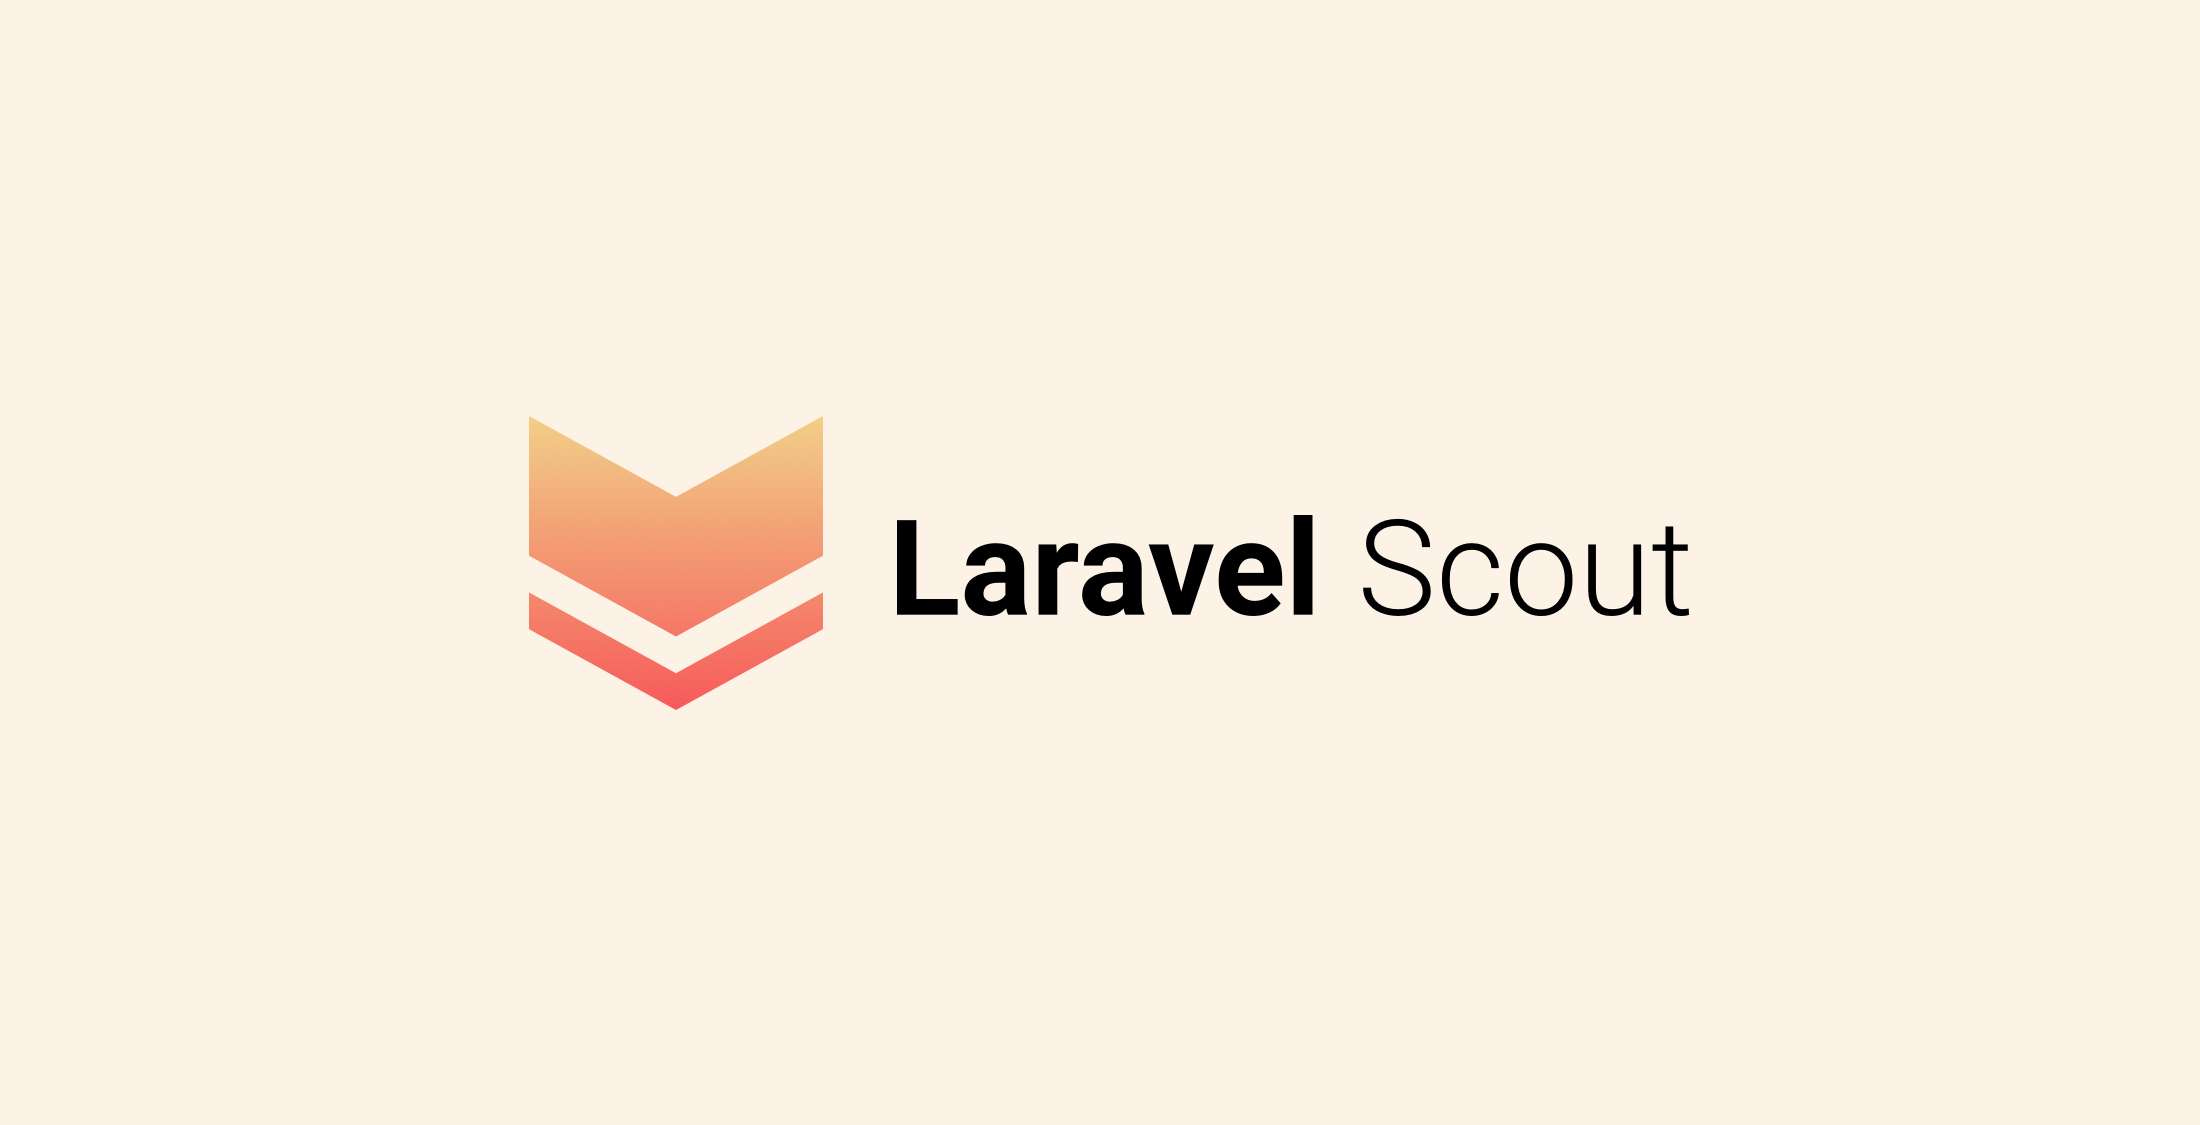 laravel-scout-featured.png